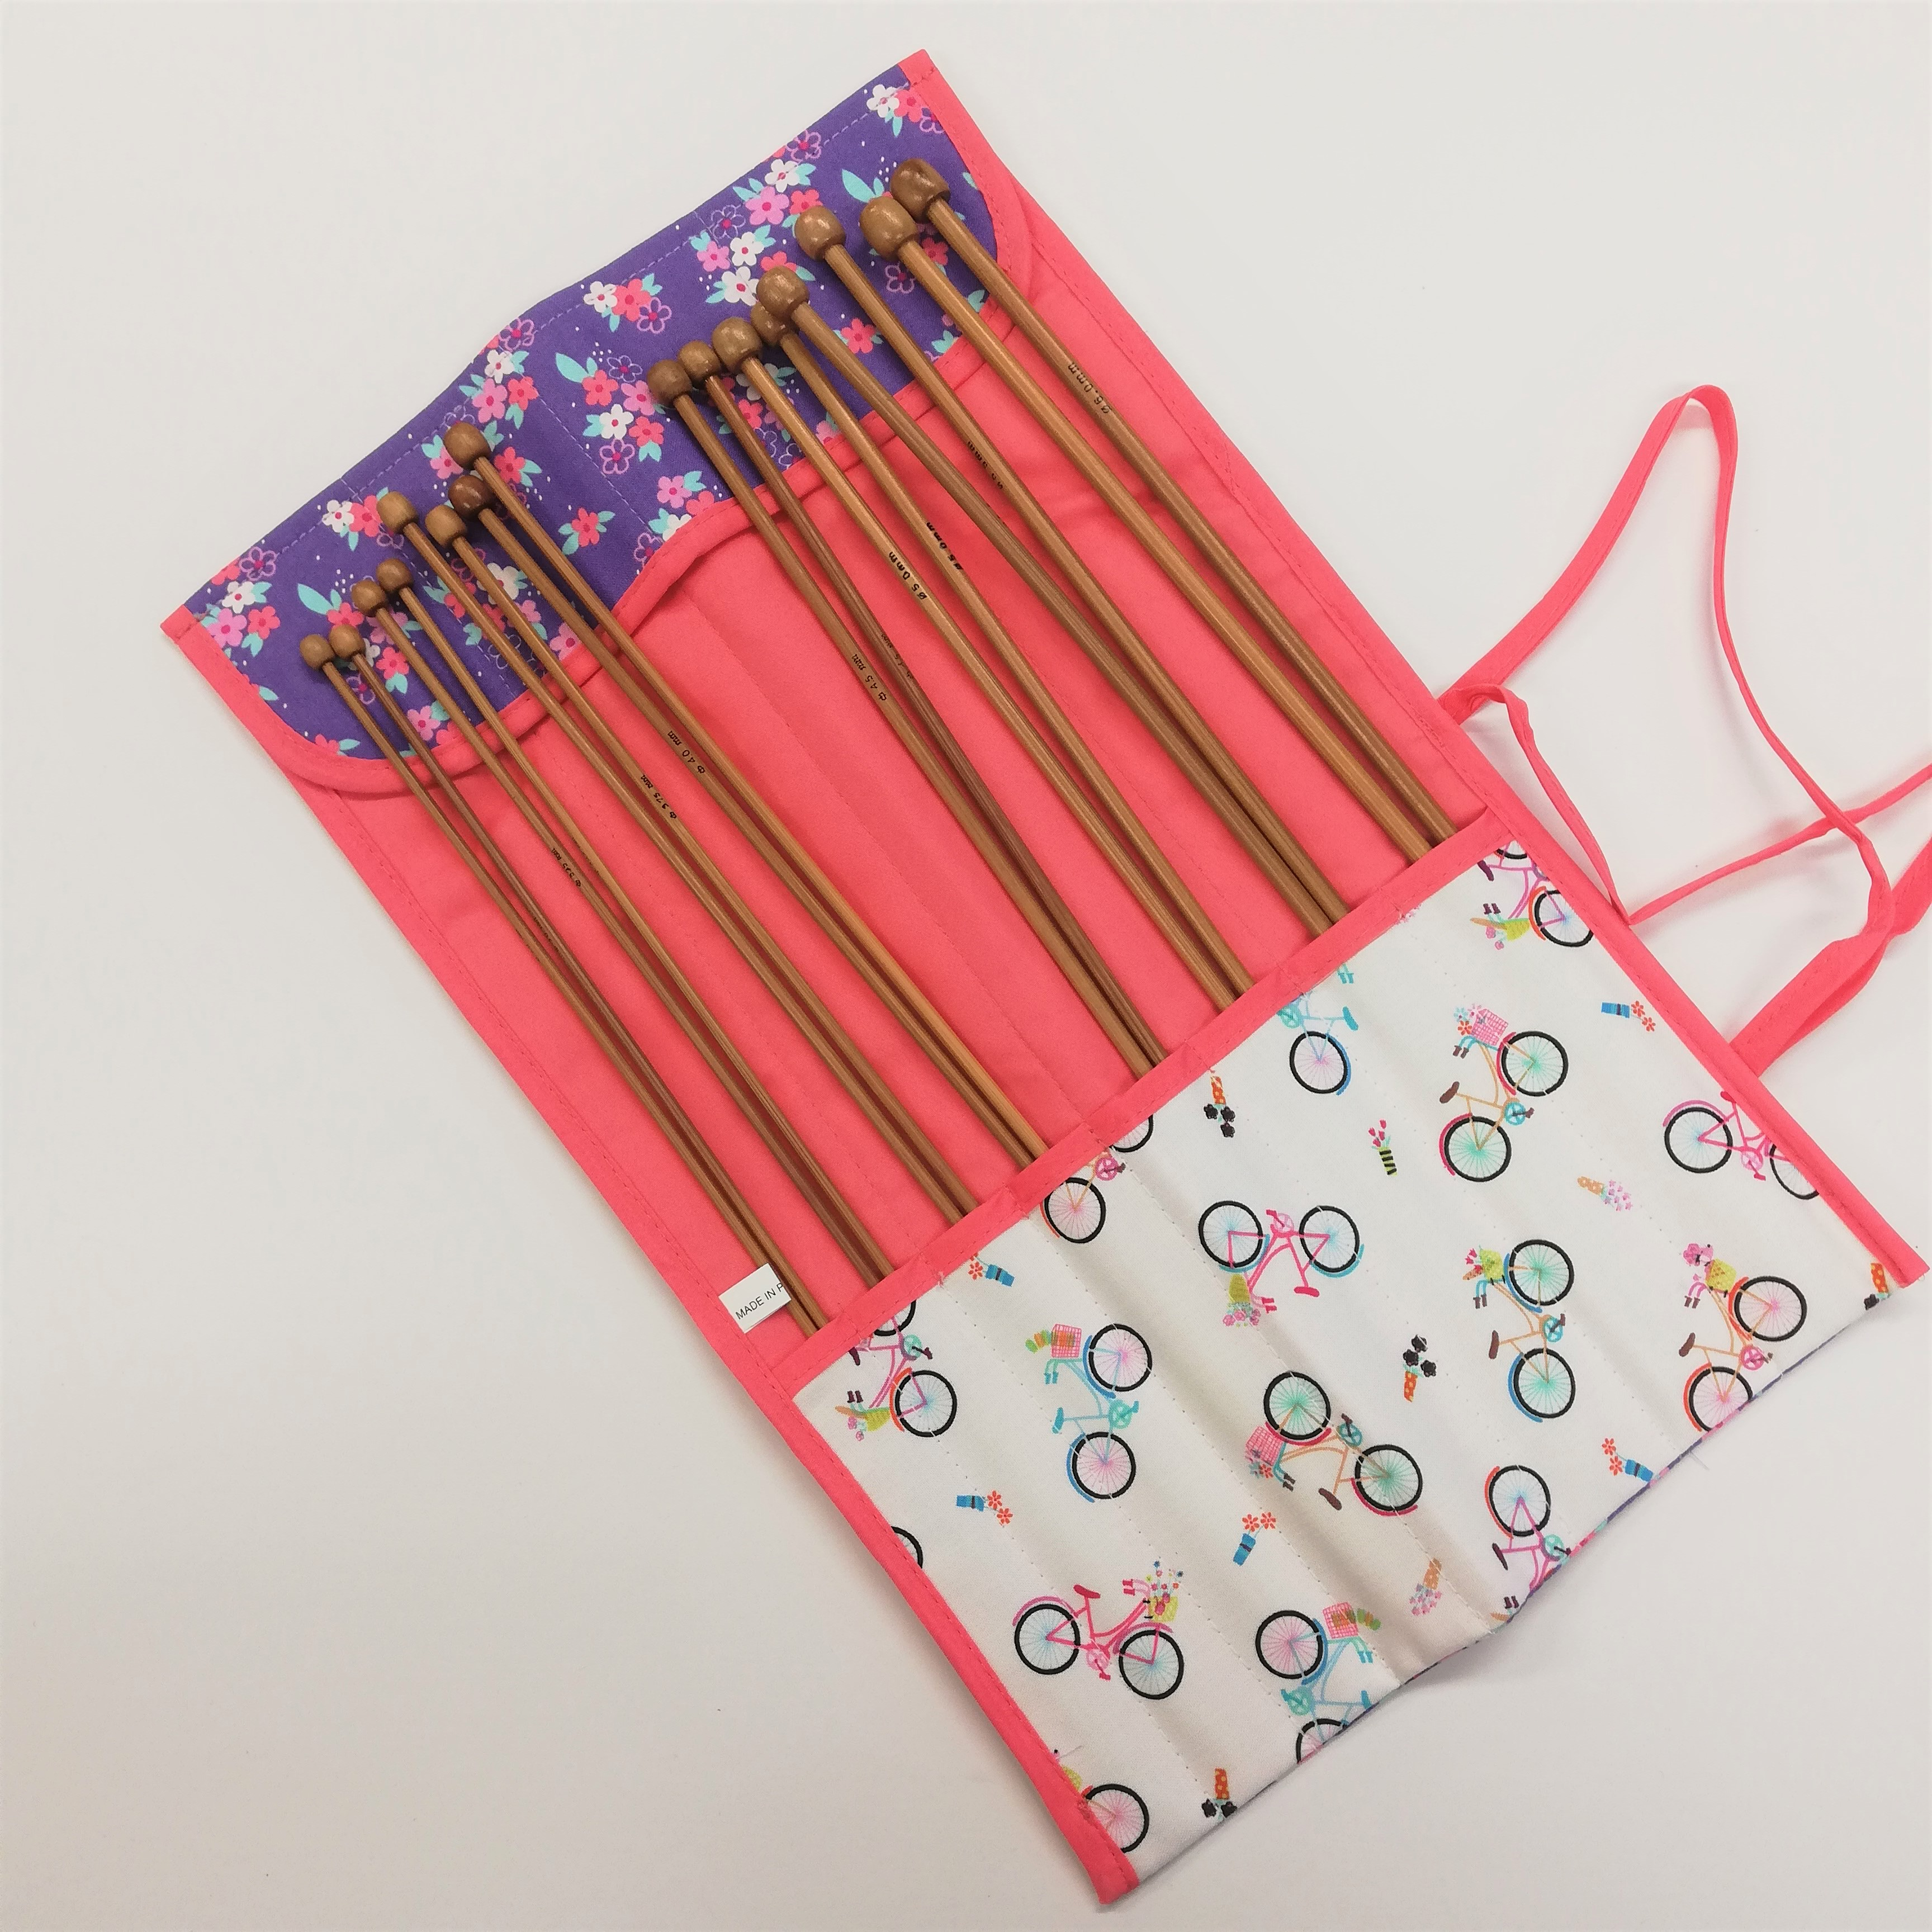 Gift Idea - Knitting Needle Roll Complete with Needles